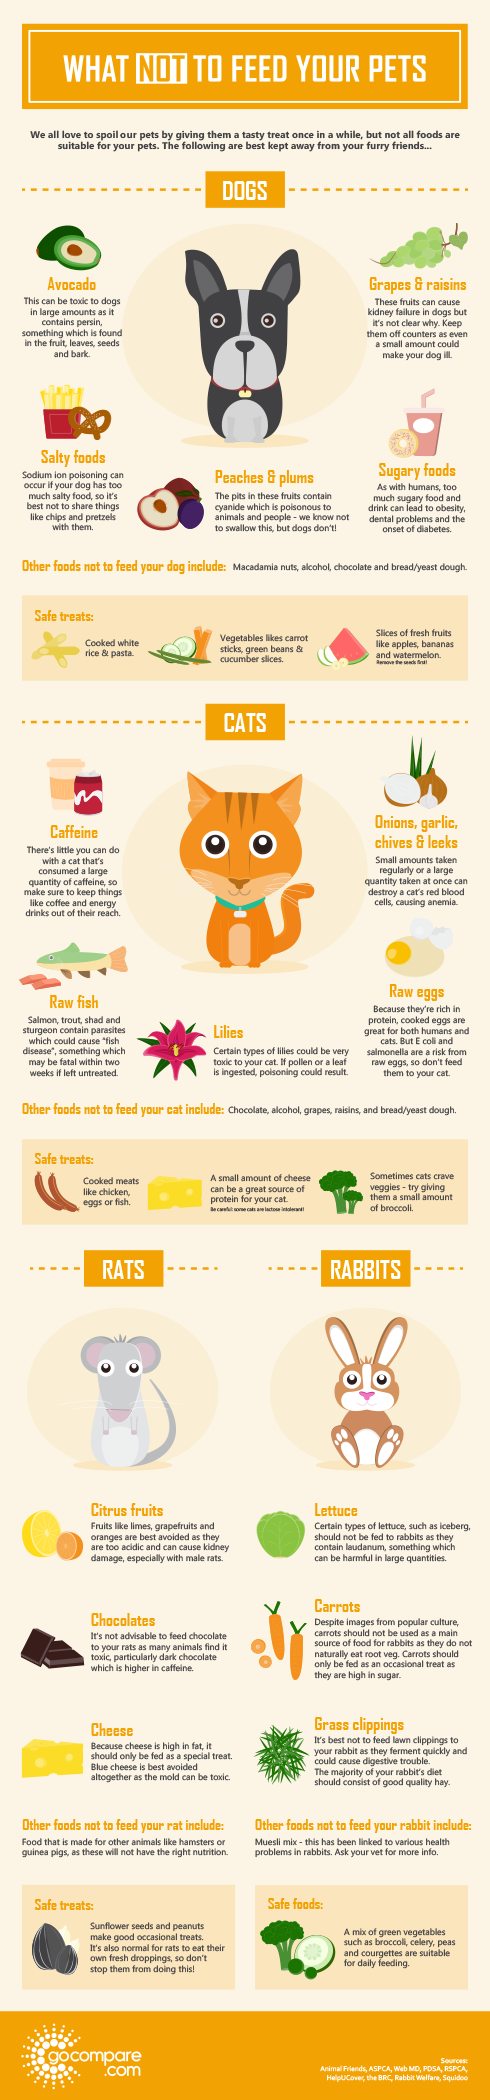 What Not To Feed Your Pets Pet Insurance Gocompare Com Animal Infographic Healthy Pets Pets